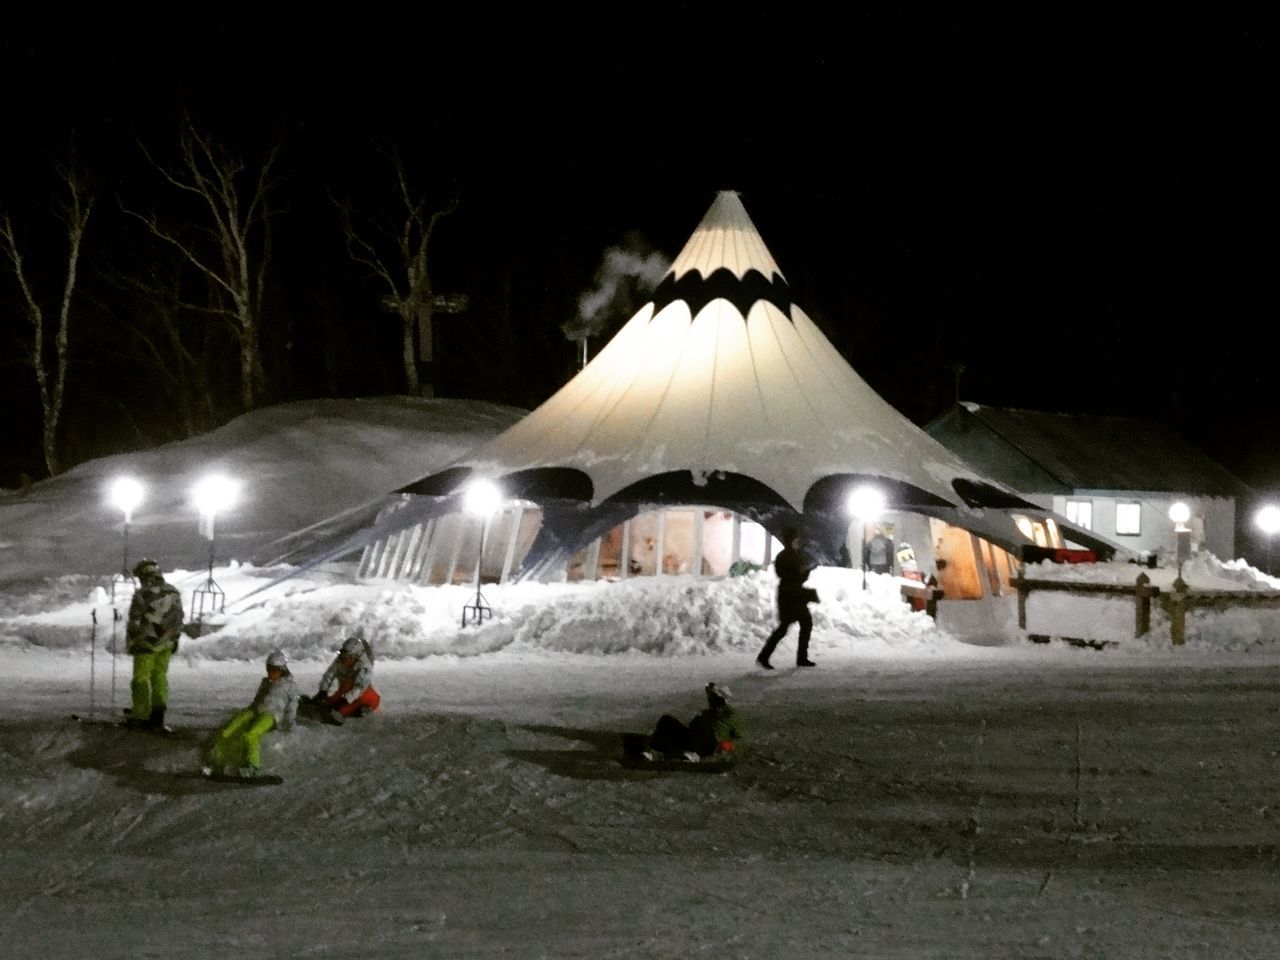 night, real people, cold temperature, snow, group of people, winter, illuminated, nature, transportation, men, outdoors, adventure, architecture, group, people, built structure, leisure activity, women, medium group of people, snowcapped mountain